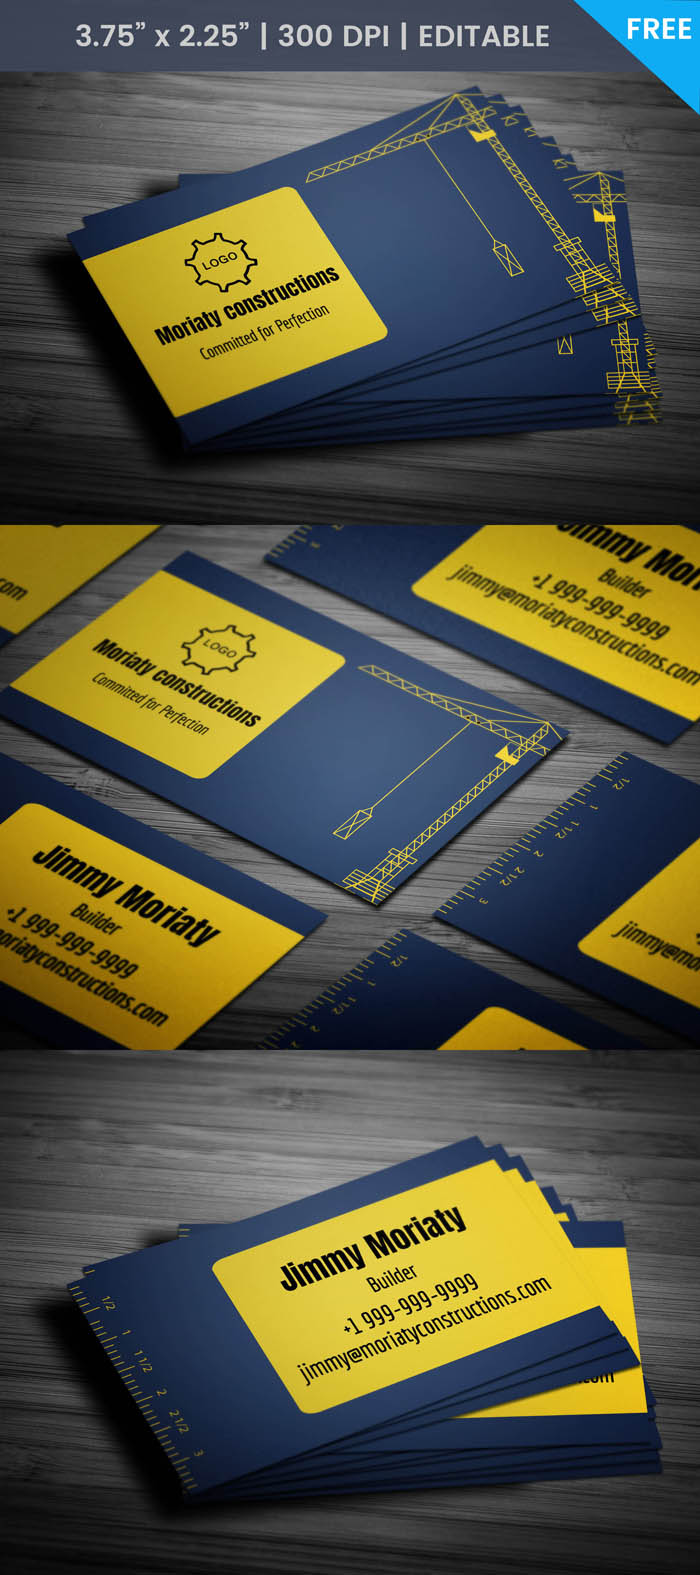 Free Heavy Equipment Business Card Template